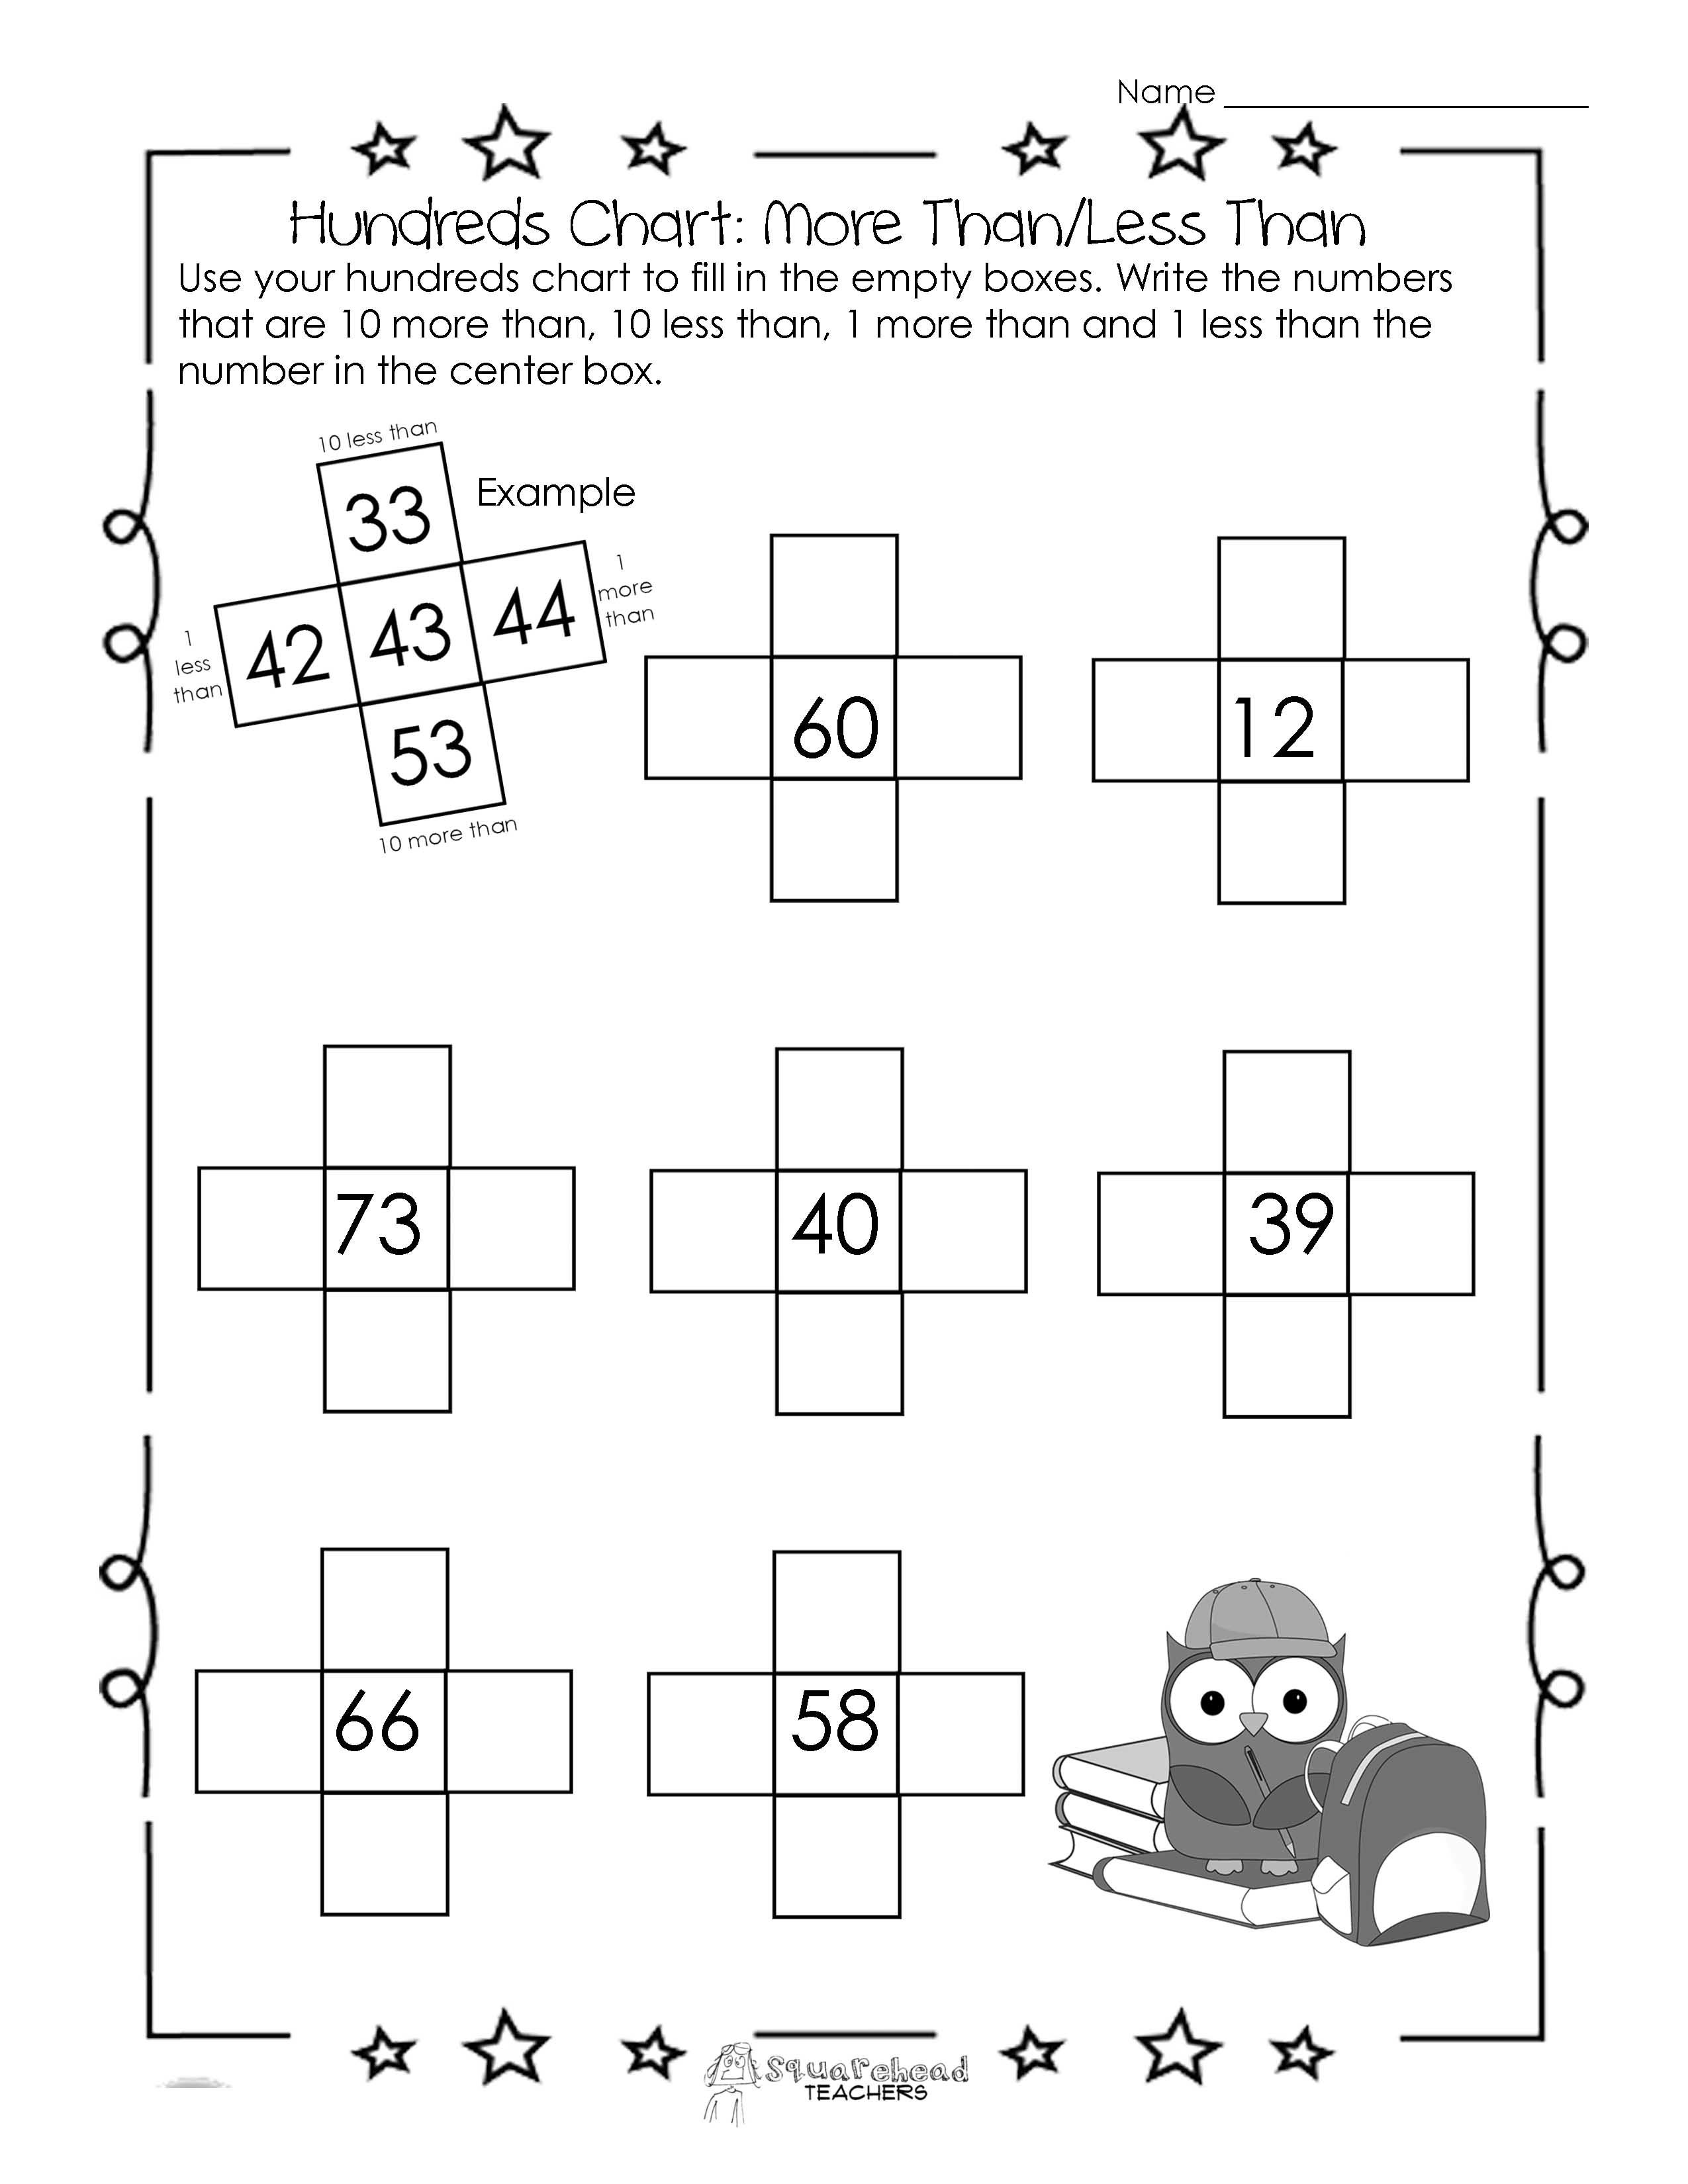 worksheet More And Less Worksheets squarehead teachers hundreds chart worksheet 10 more than10 less than